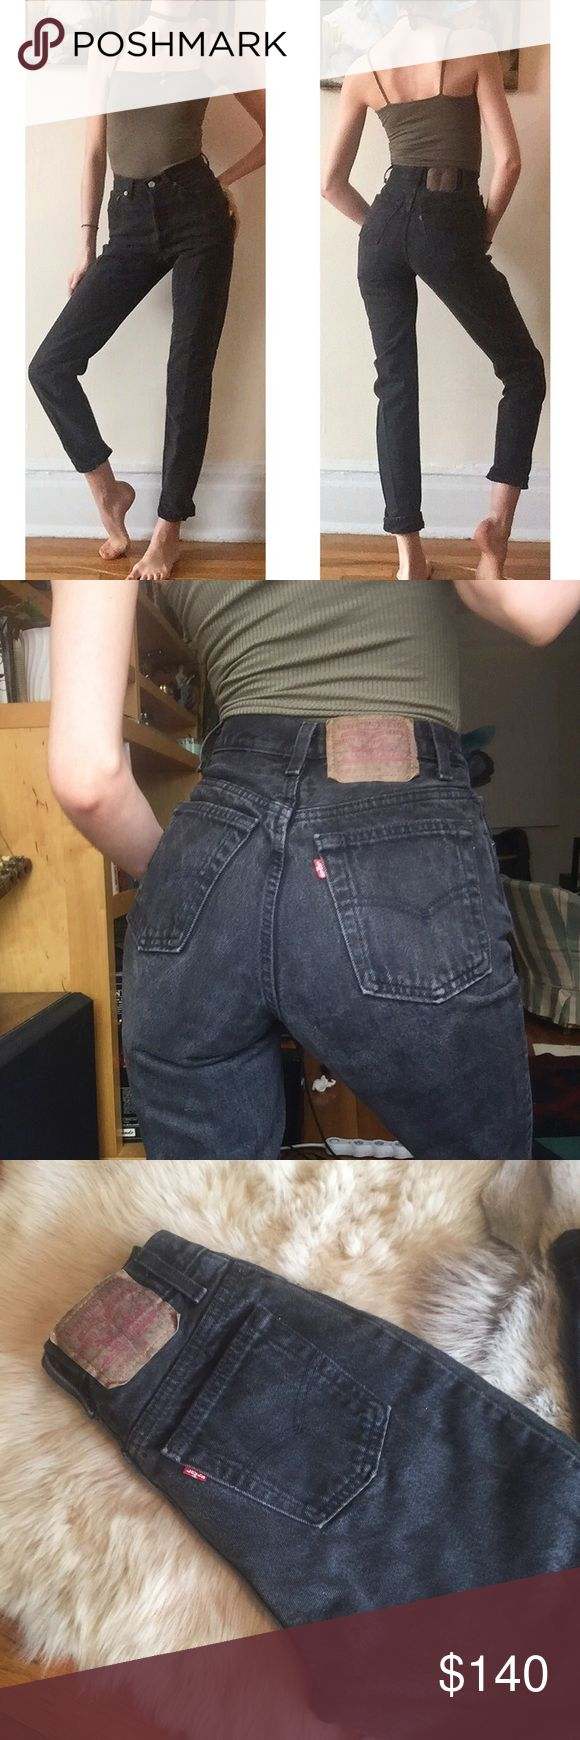 """❄️Vintage 501 Washed Black Levi's 24❄️ Amazing and GORGEOUS washed black vintage 501 Levi's! 23.75"""" waist, 10.5"""" rise, 31"""" inseam! Great quality denim and these actually hug your butt! They have awesome vintage wear and fading! No holes! Upon purchase, I can cut off and fray the hem to any measurement if you'd like. Seriously BEAUTIFUL jeans!! Levi's Jeans"""